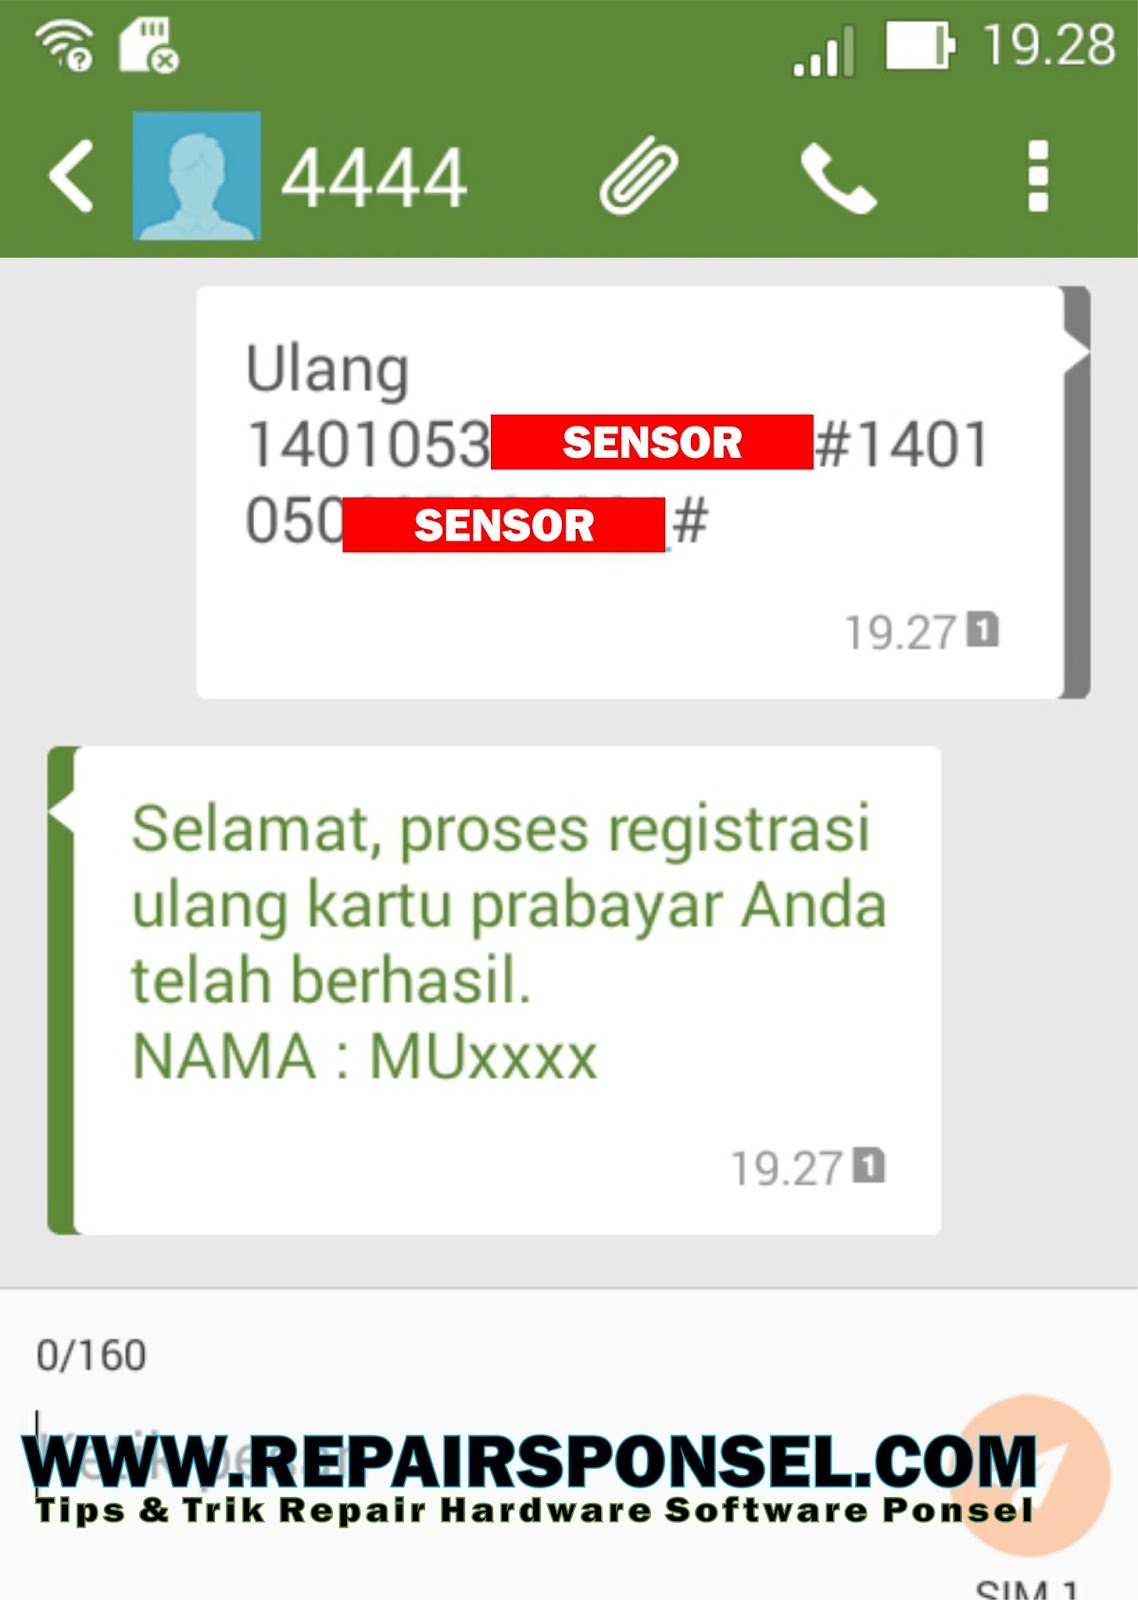 Cara Registrasi Ulang Kartu Telkomsel Simpati, AS, Loop  Repairs Ponsel